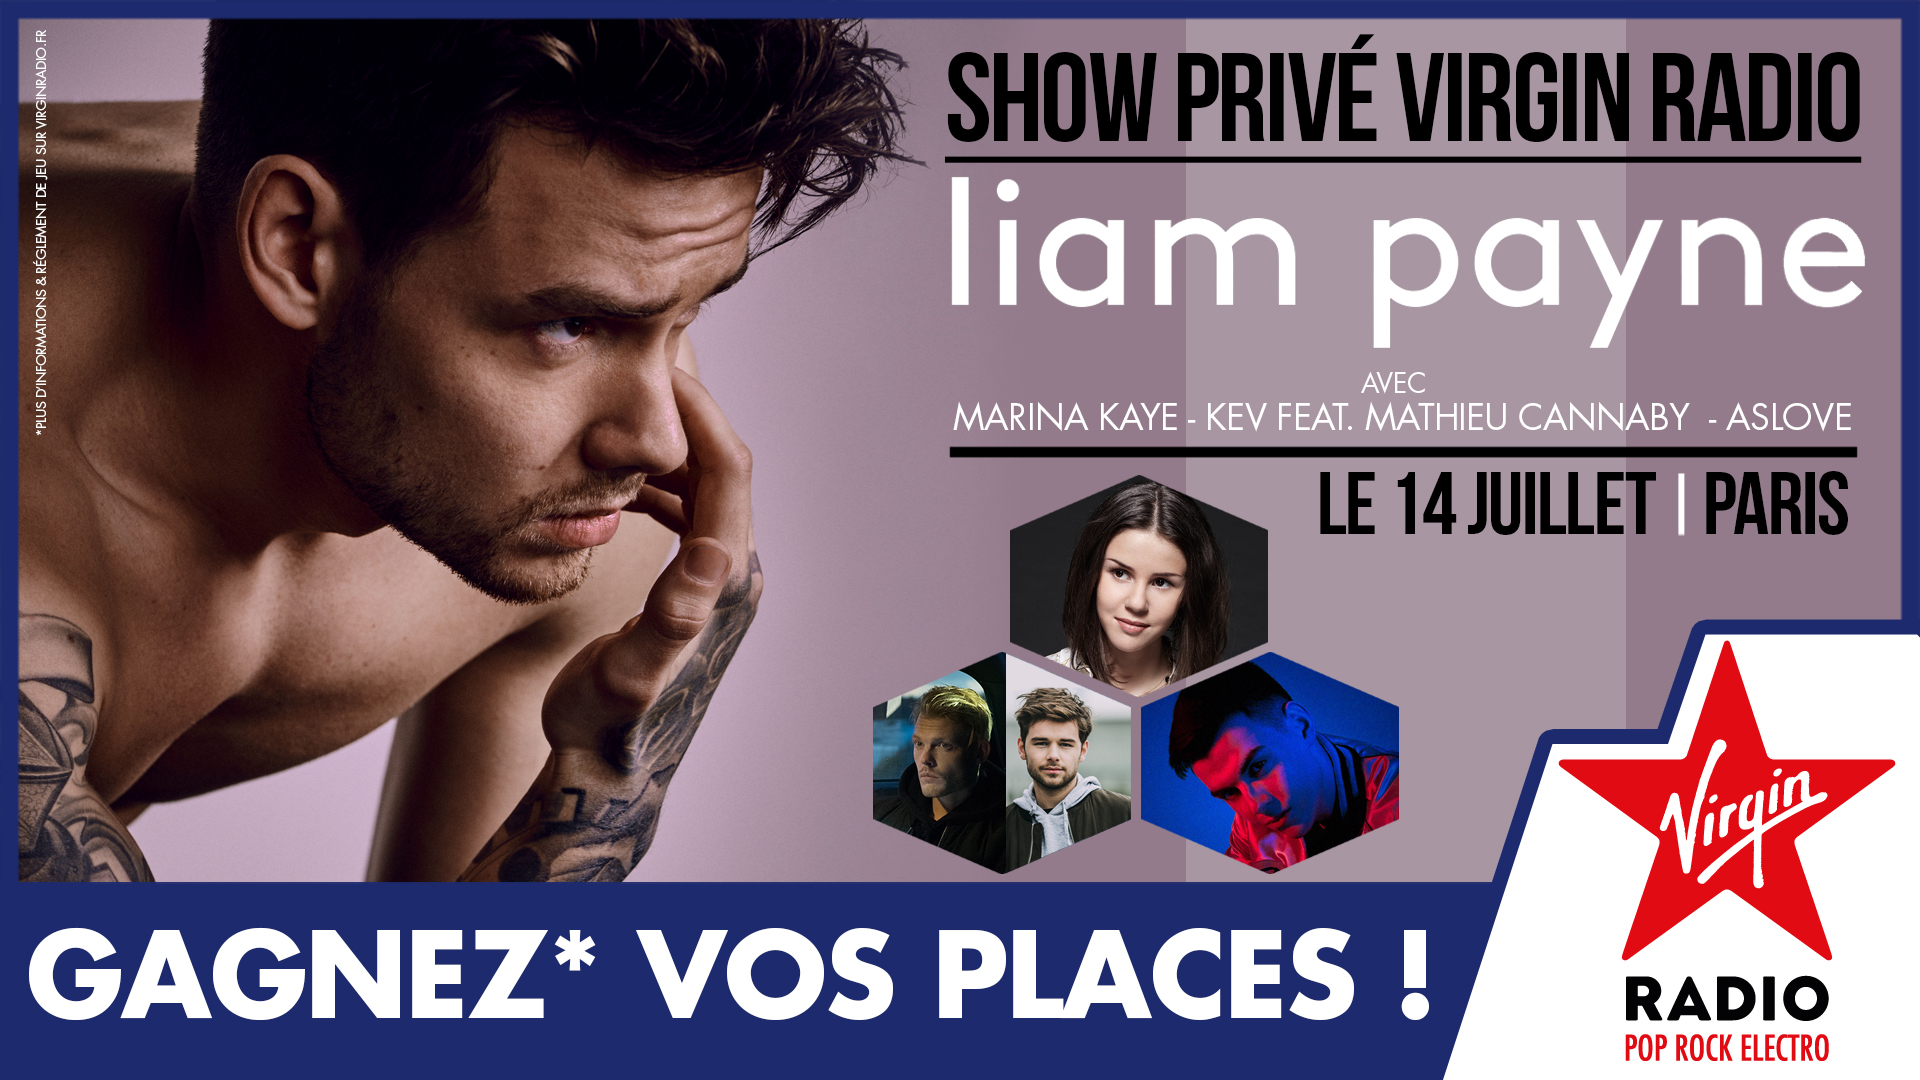 VR_LIAM-PAYNE_POST-jeu JustMusic.fr